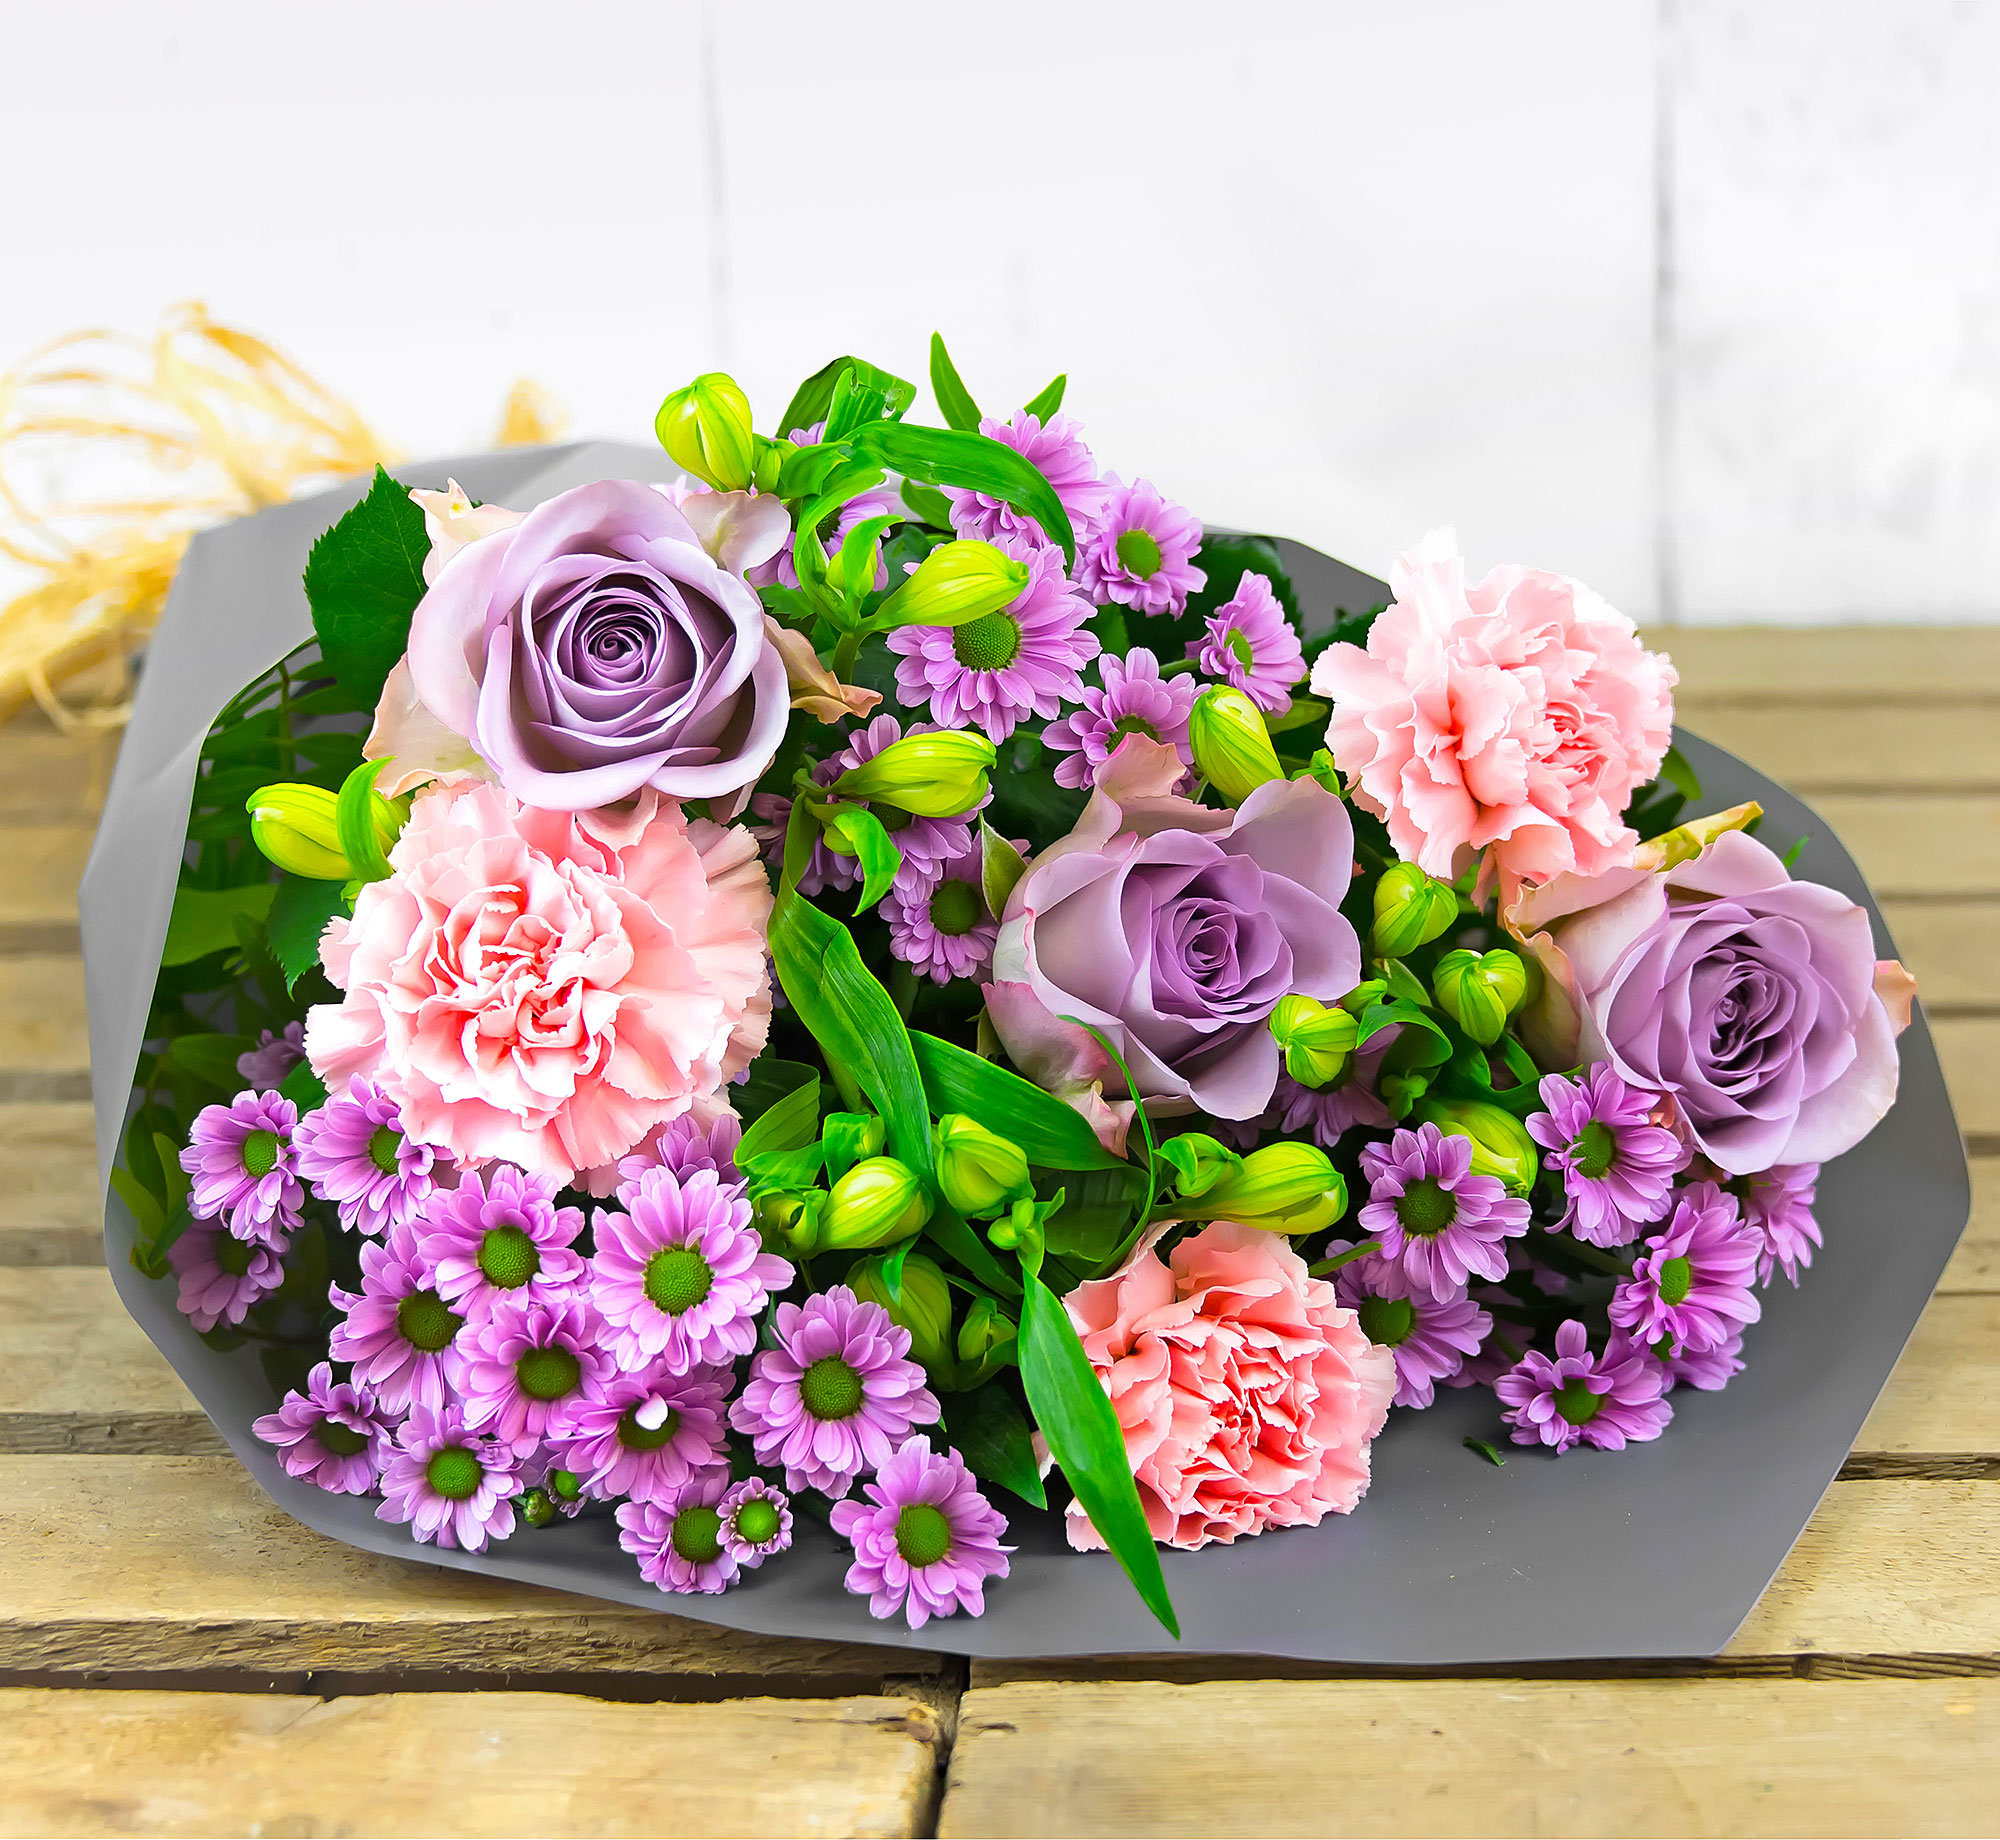 Pastel Pleasures – Free Delivery - Roses, Peruvian Lilies & Carnations – Birthday Flowers – Flower Delivery